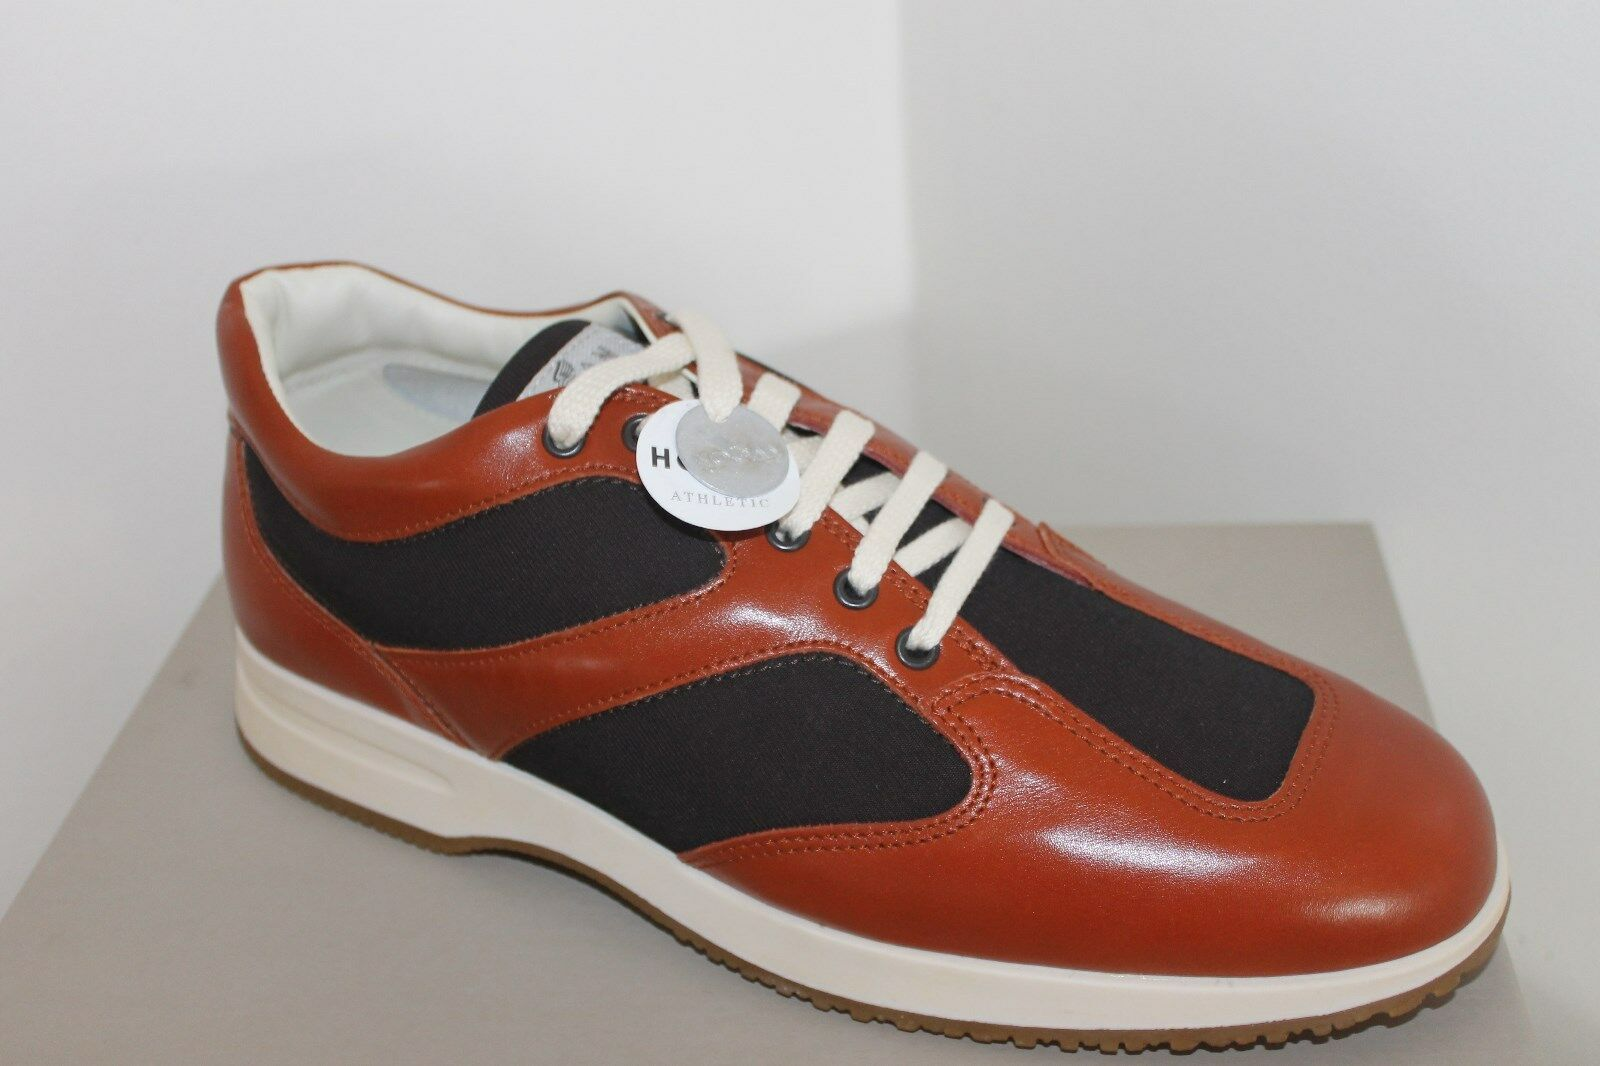 hogan mens trainers sneakers shoes brown tan leather